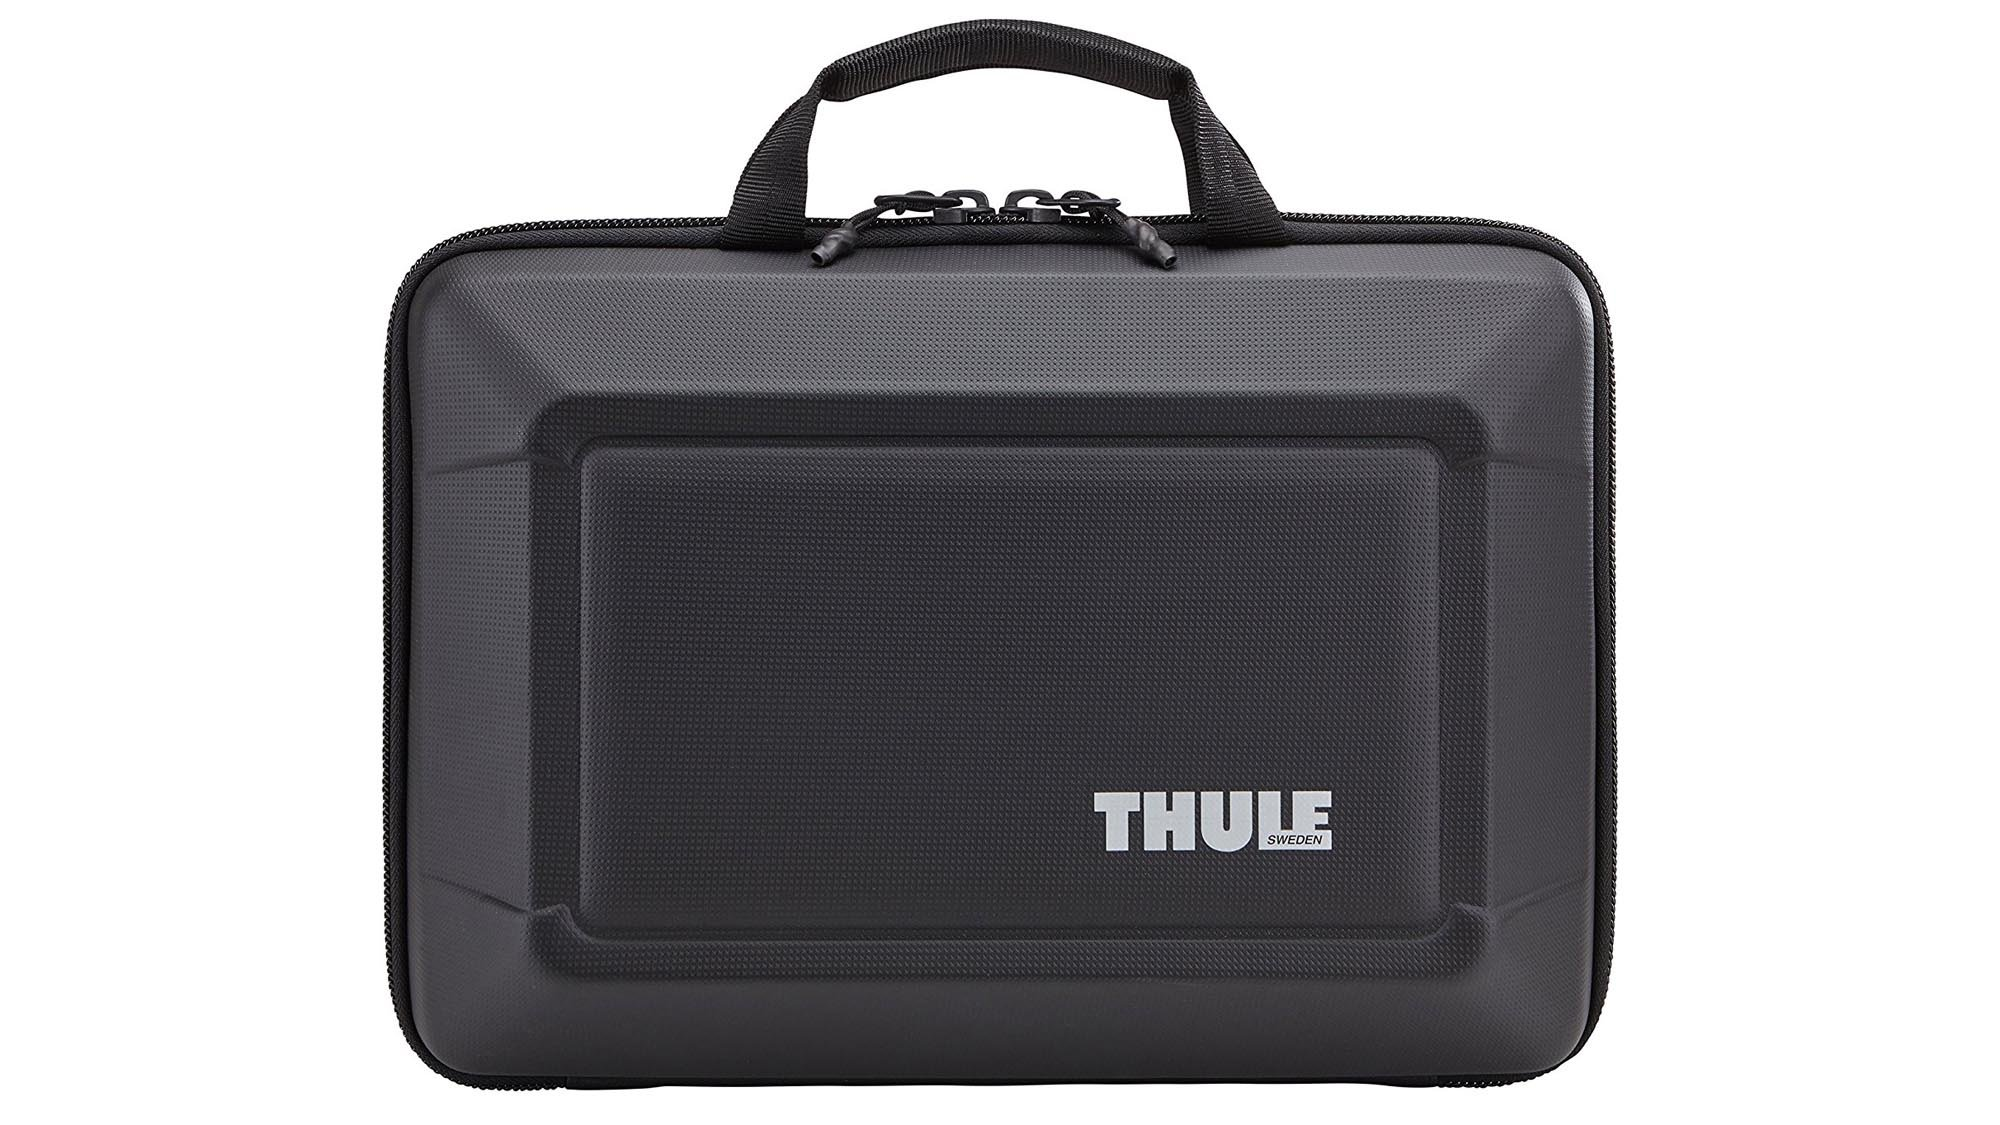 52fdd9369 If you're lugging a laptop through hostile environments, you'll wish you  had it stuffed inside the Thule Gauntlet 3.0. It's available in sleeve and  bag ...